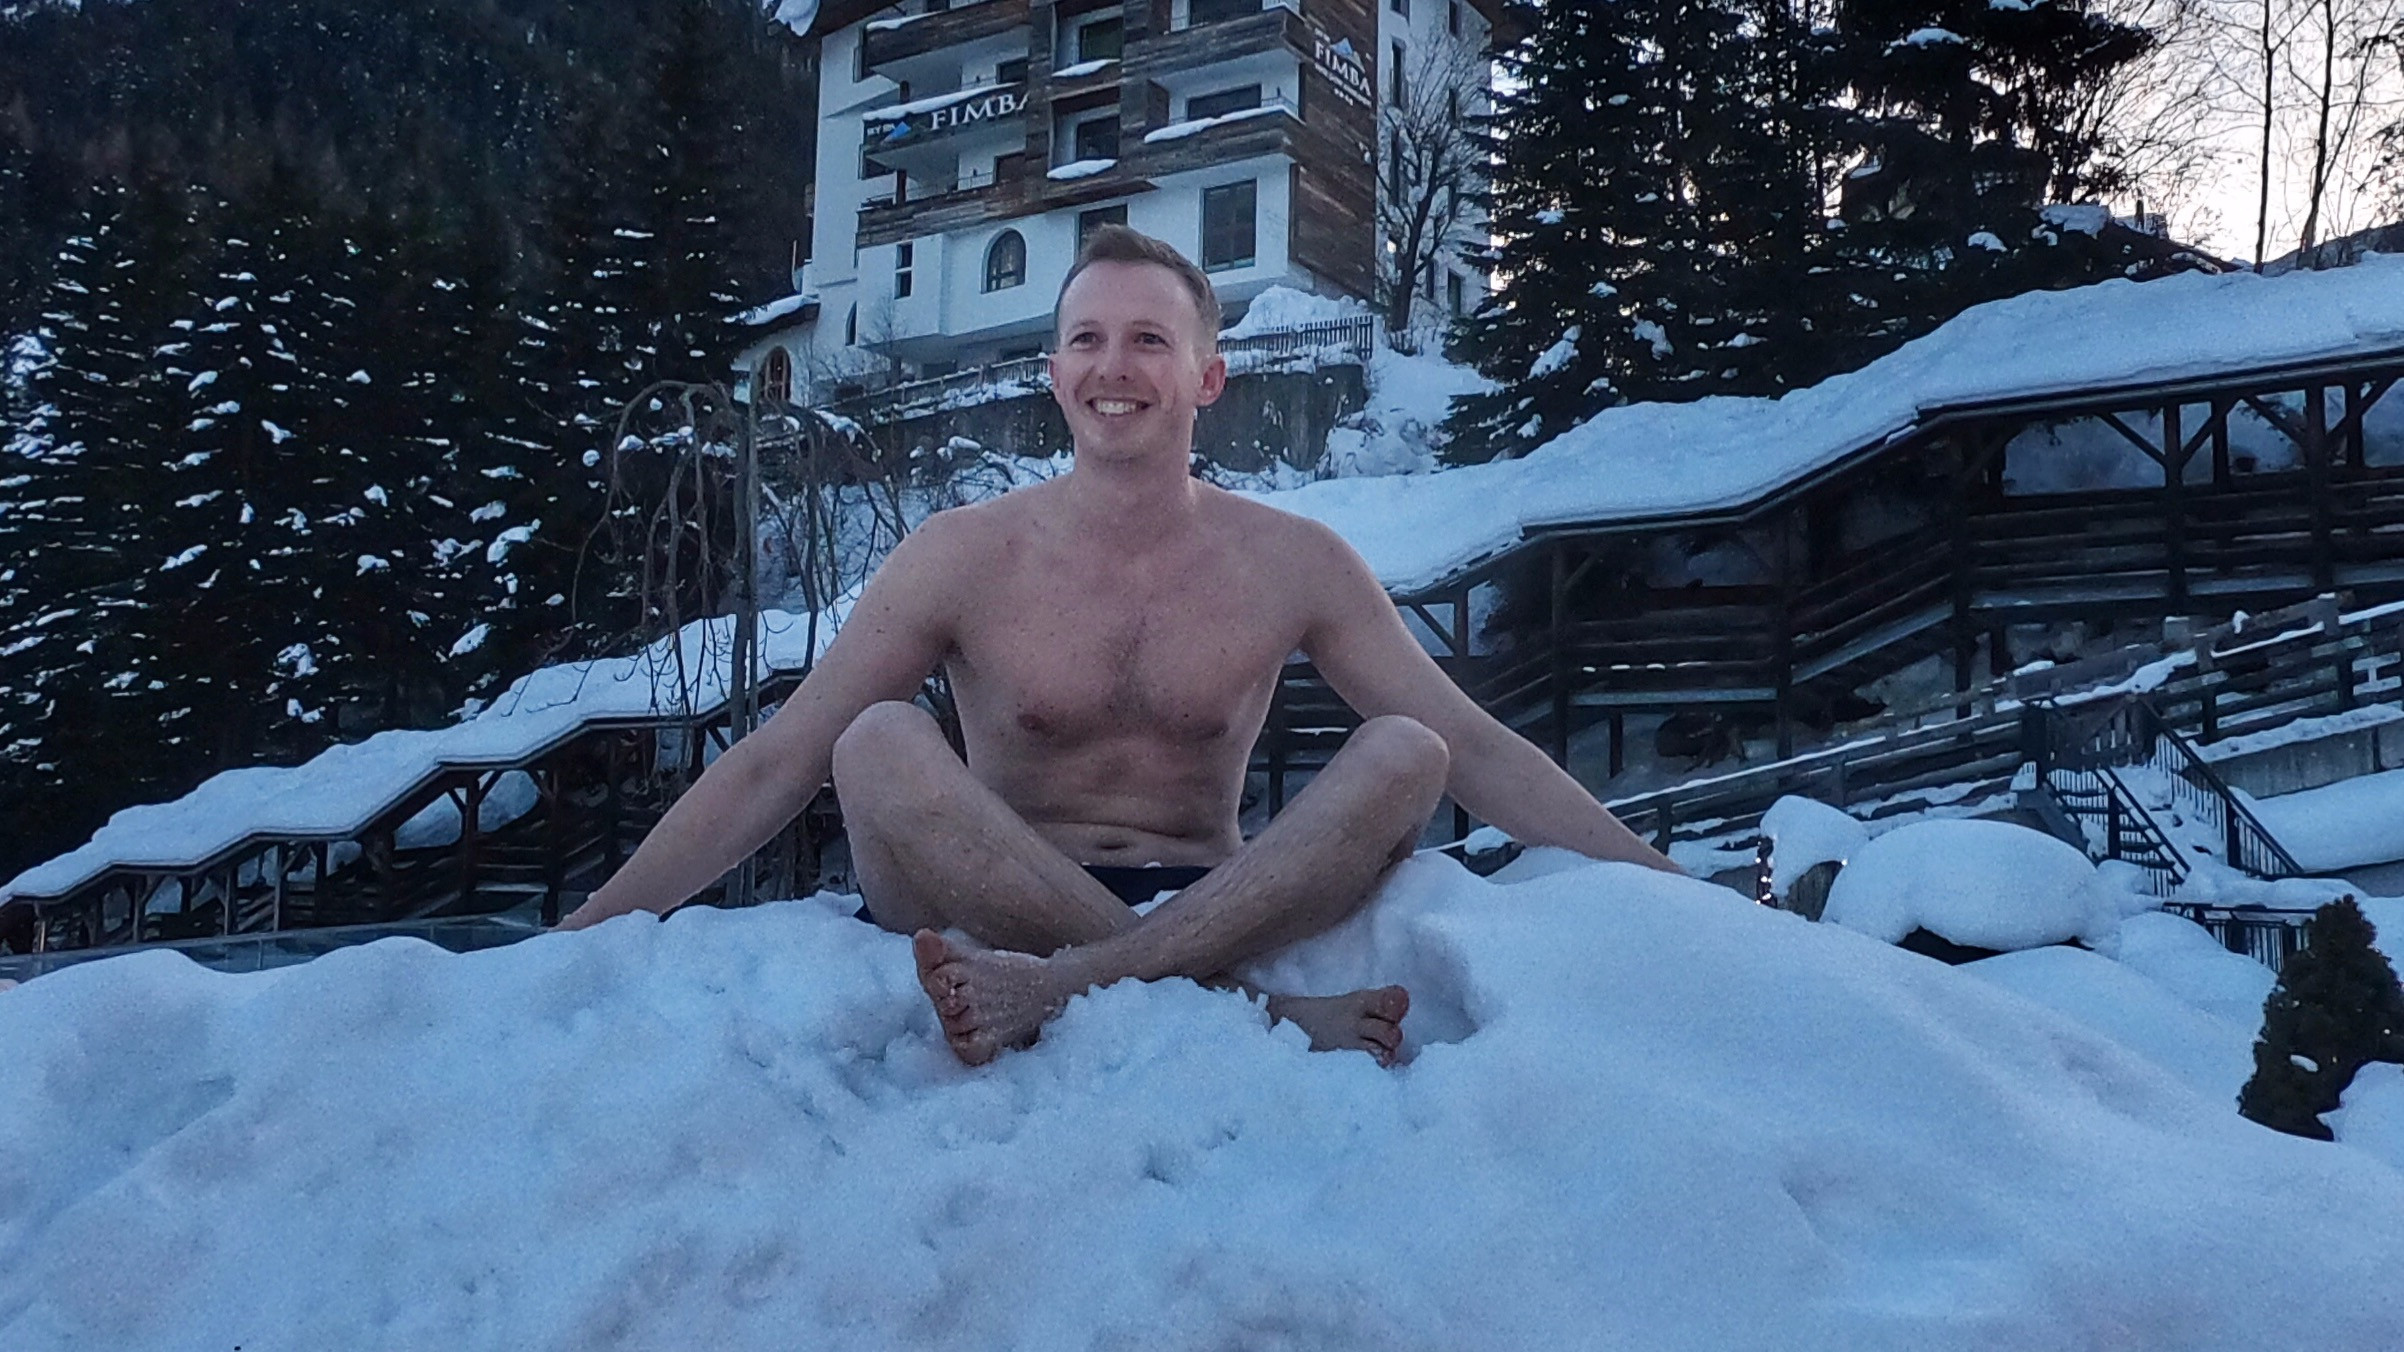 Image 4 of 7 - Experience the Wim Hof Method to get an impression of  at